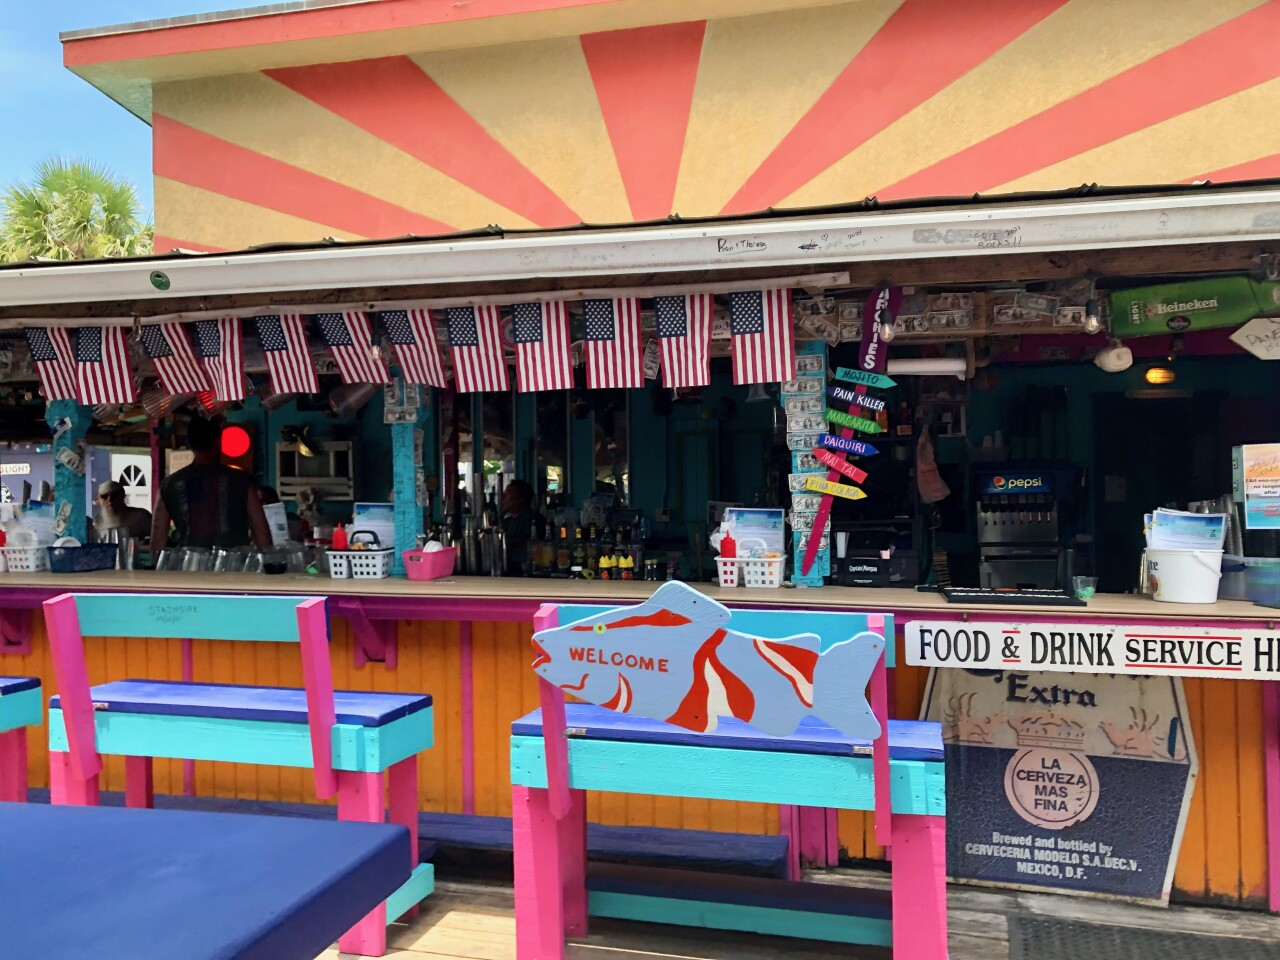 American flags line the bar.